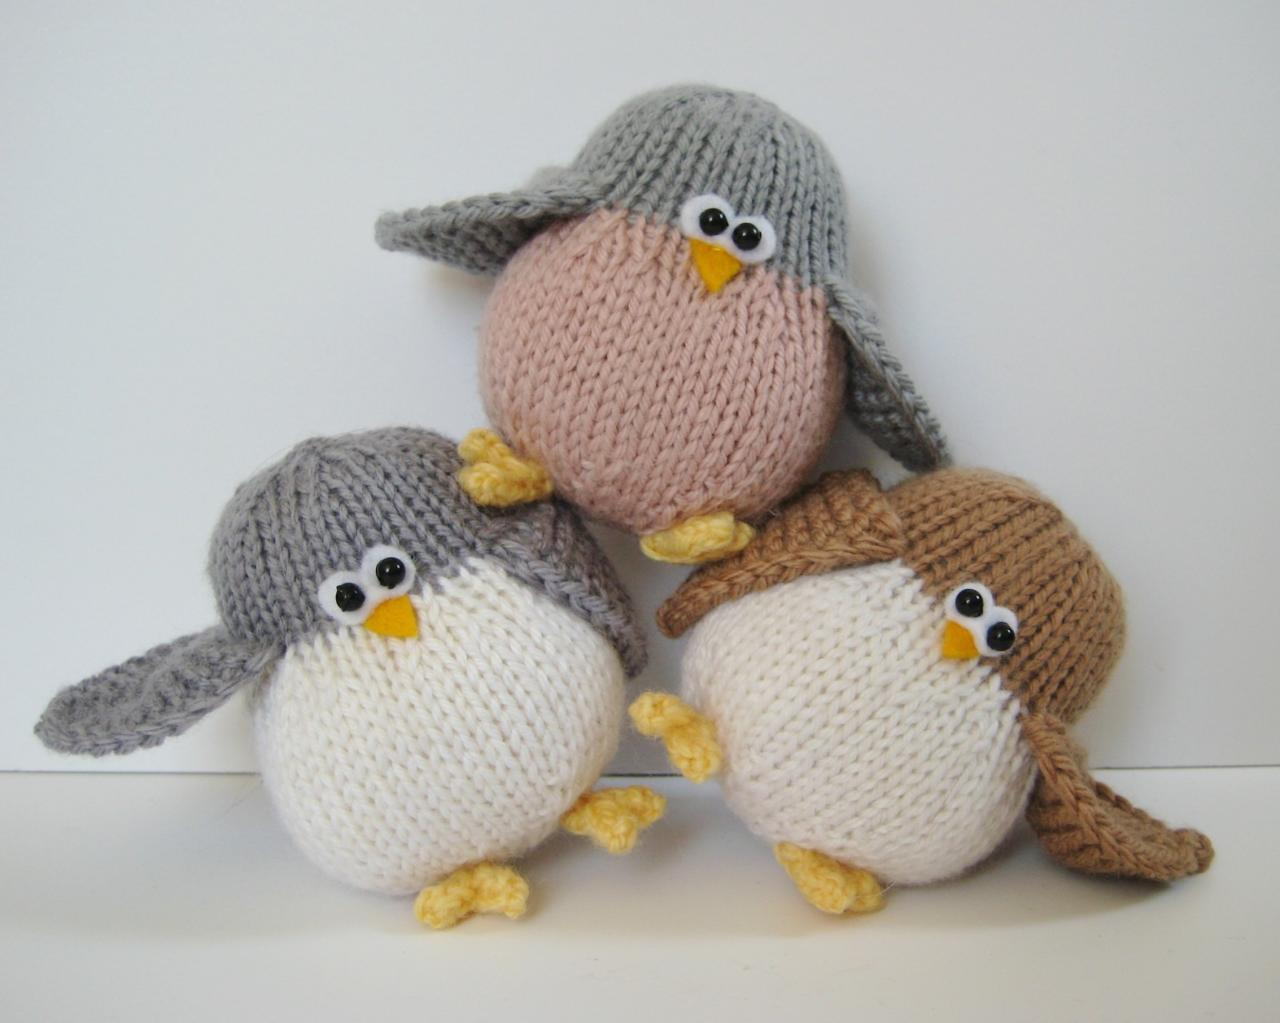 Juggle birdies toy knitting patterns